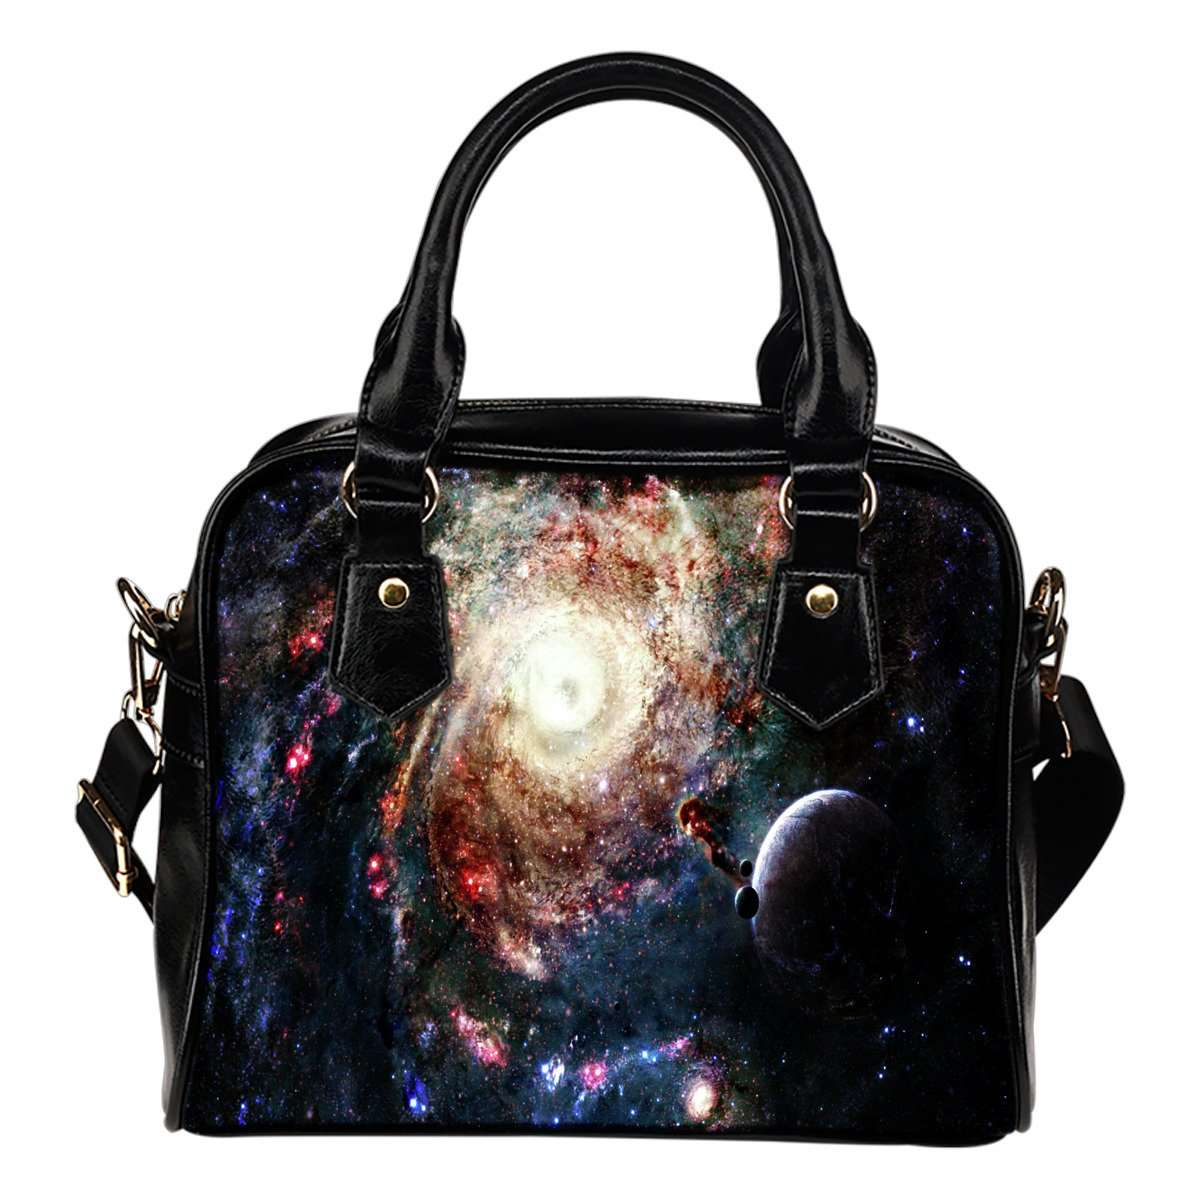 Galaxy #8 Theme Women Fashion Shoulder Handbag Black Vegan Faux Leather - STUDIO 11 COUTURE